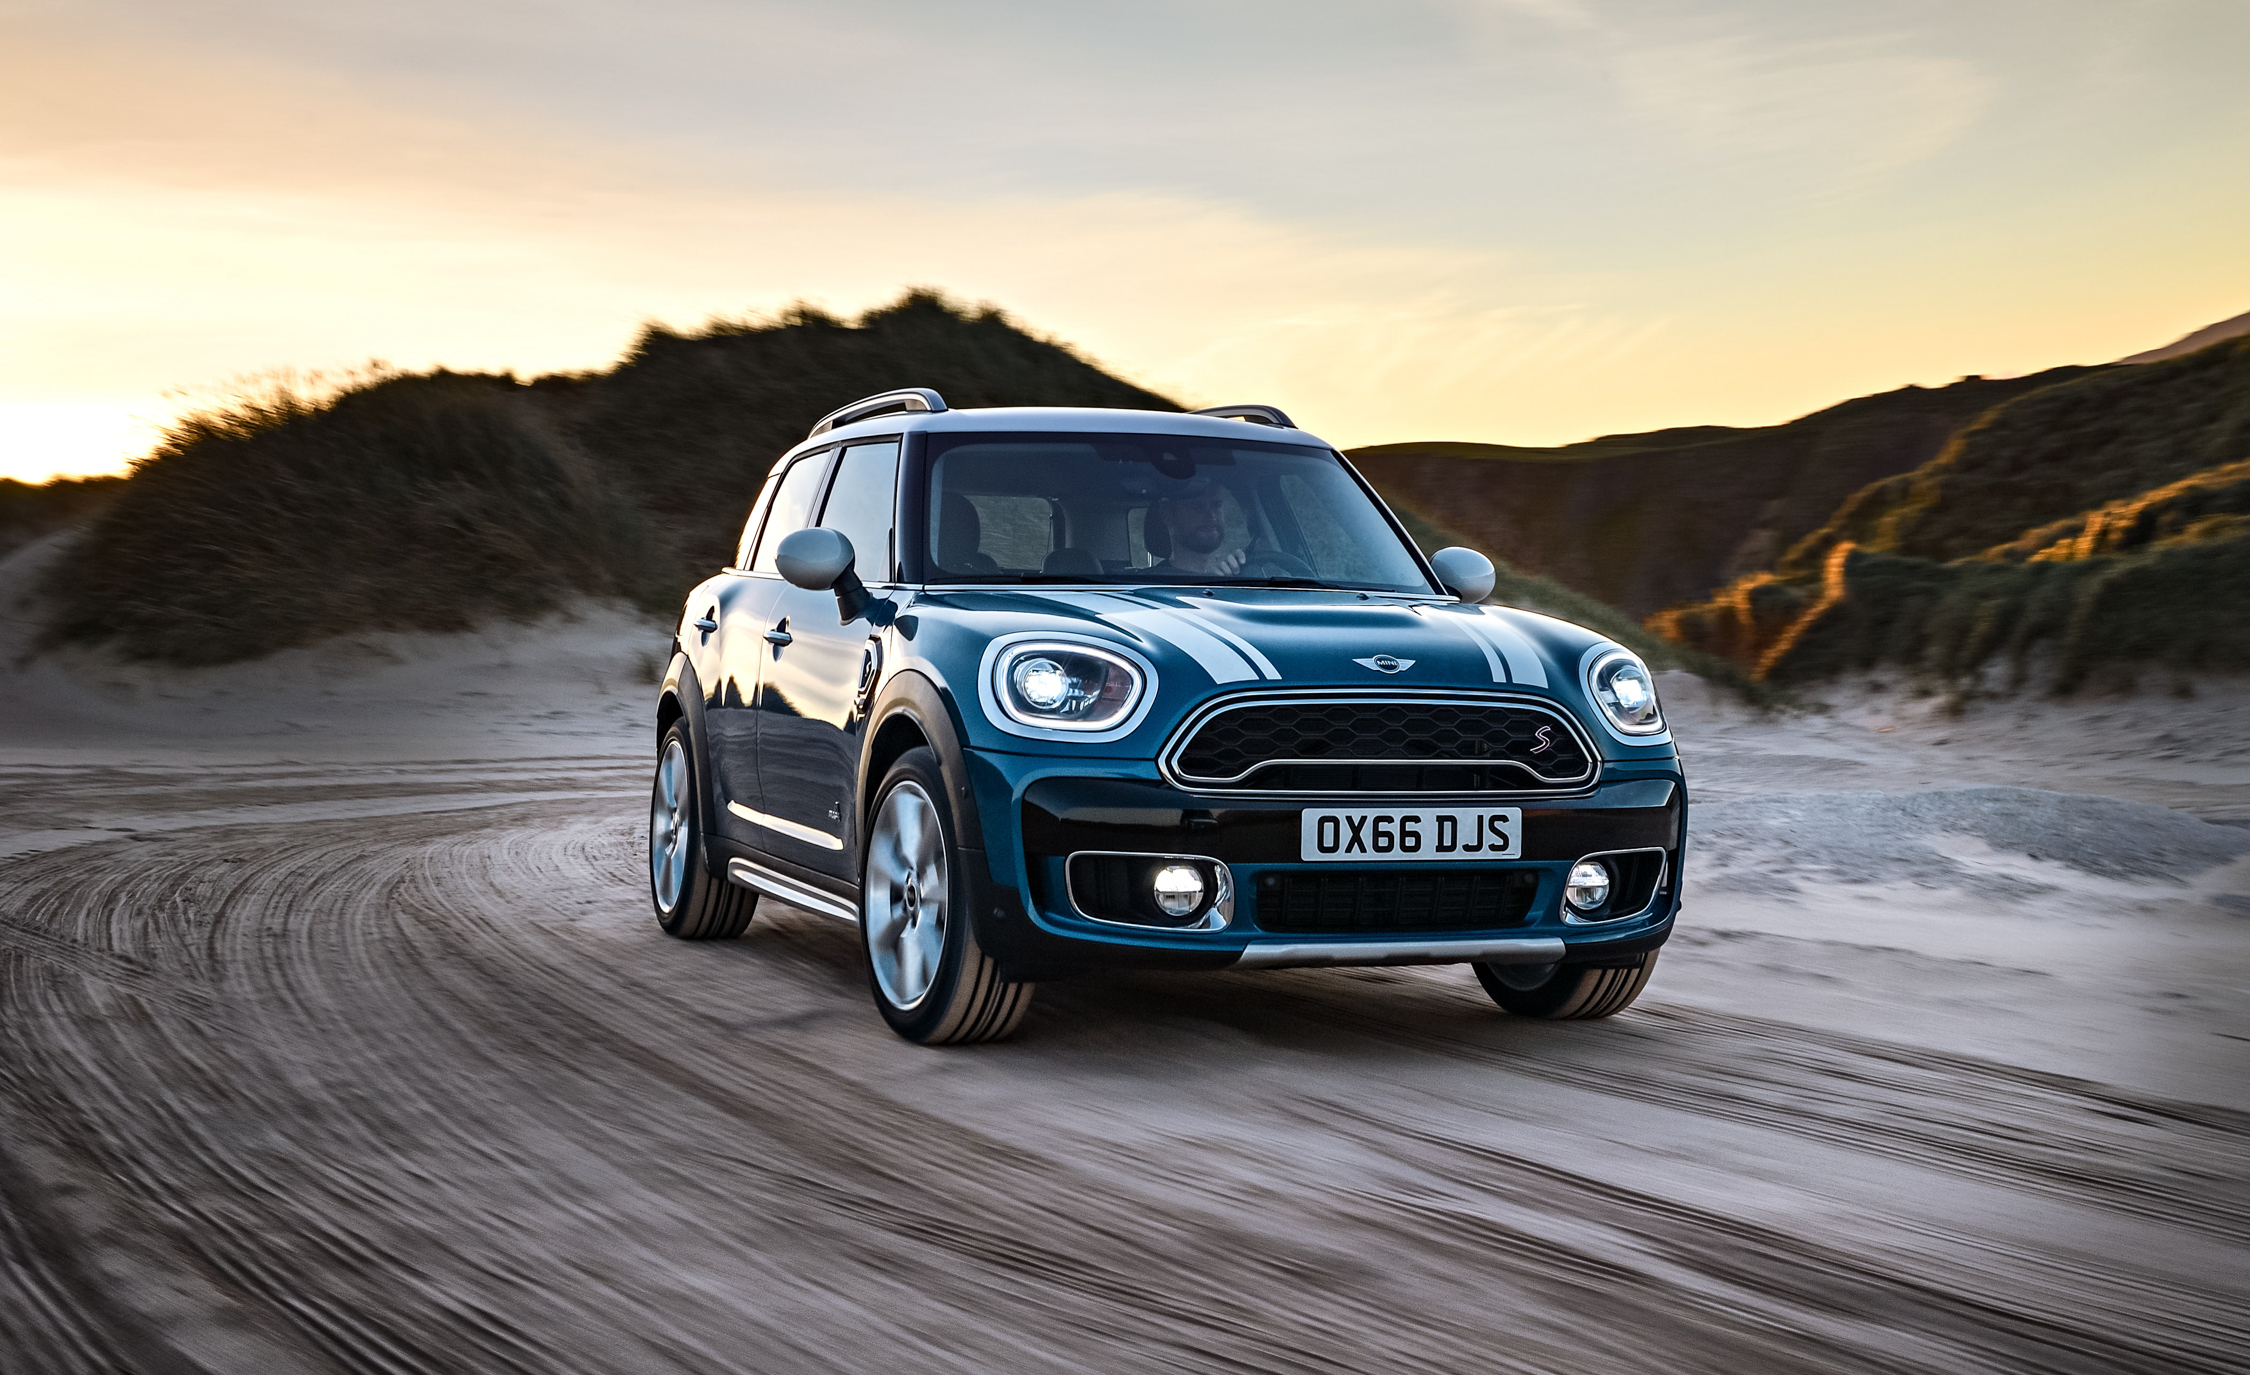 2017 Mini Countryman | Cars Exclusive Videos and Photos Updates